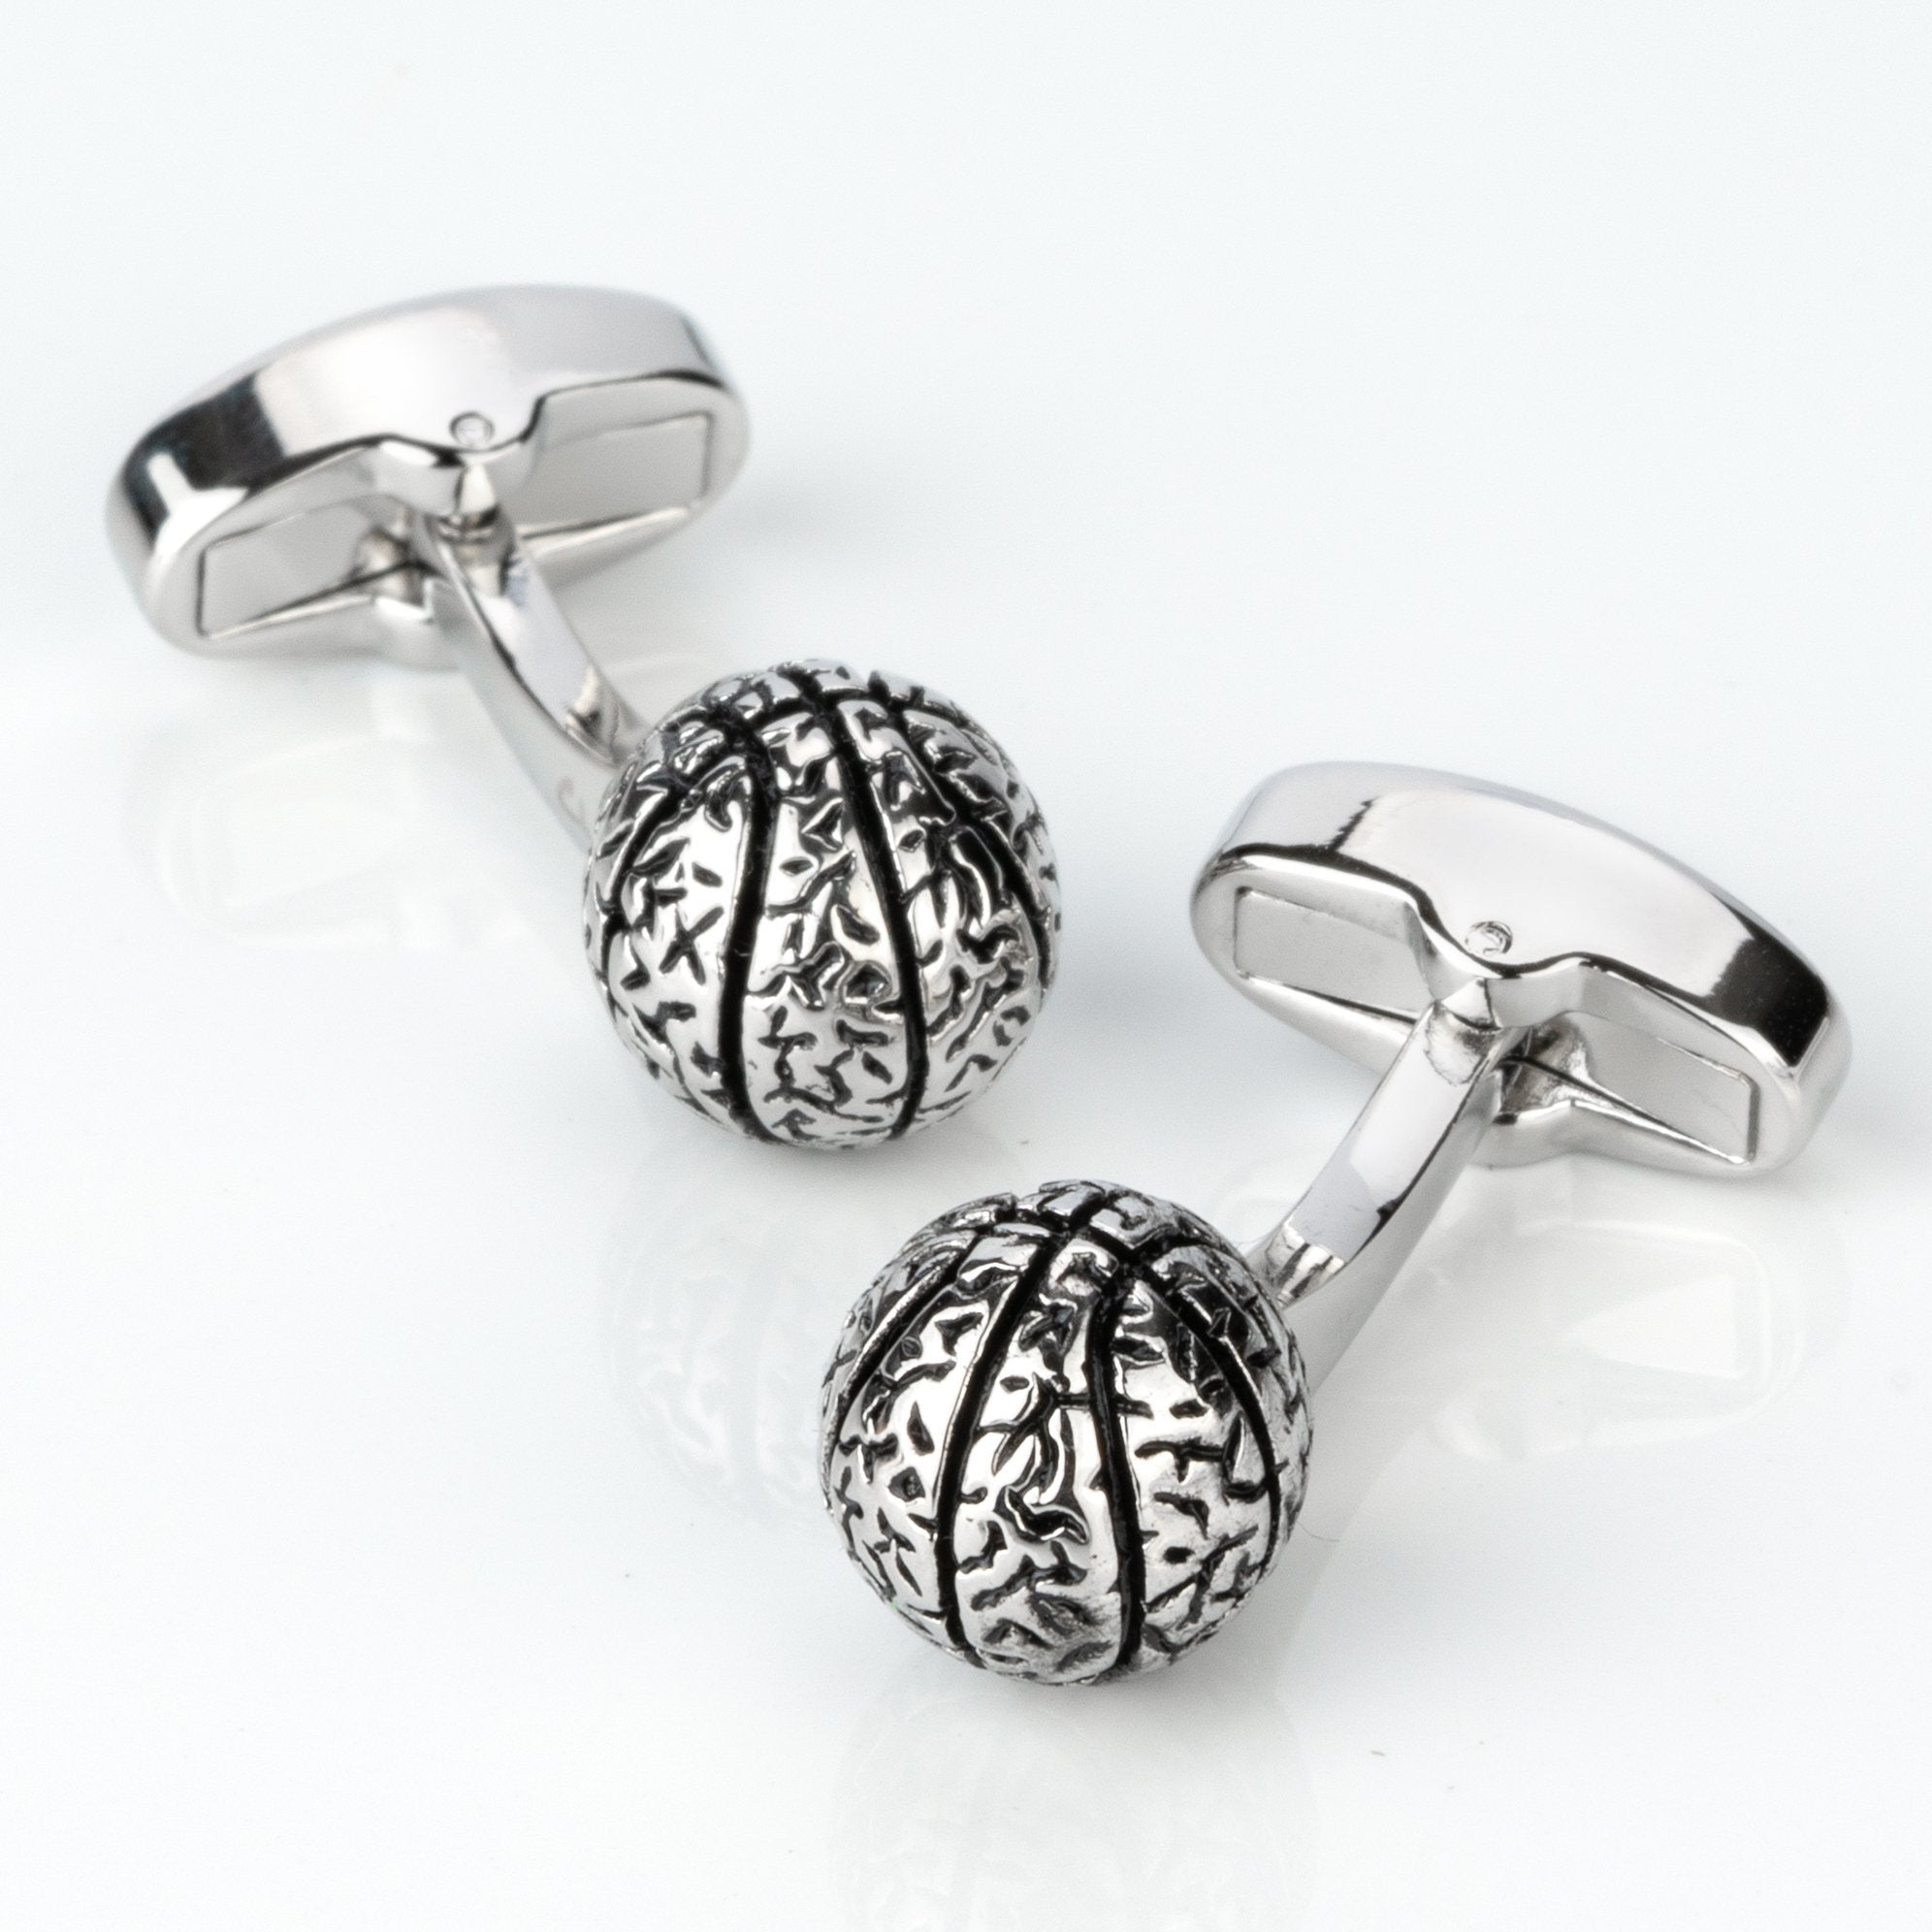 Silver Basketball Cufflinks, Novelty Cufflinks, Cuffed.com.au, CL4011, Silver, Sports, Clinks Australia